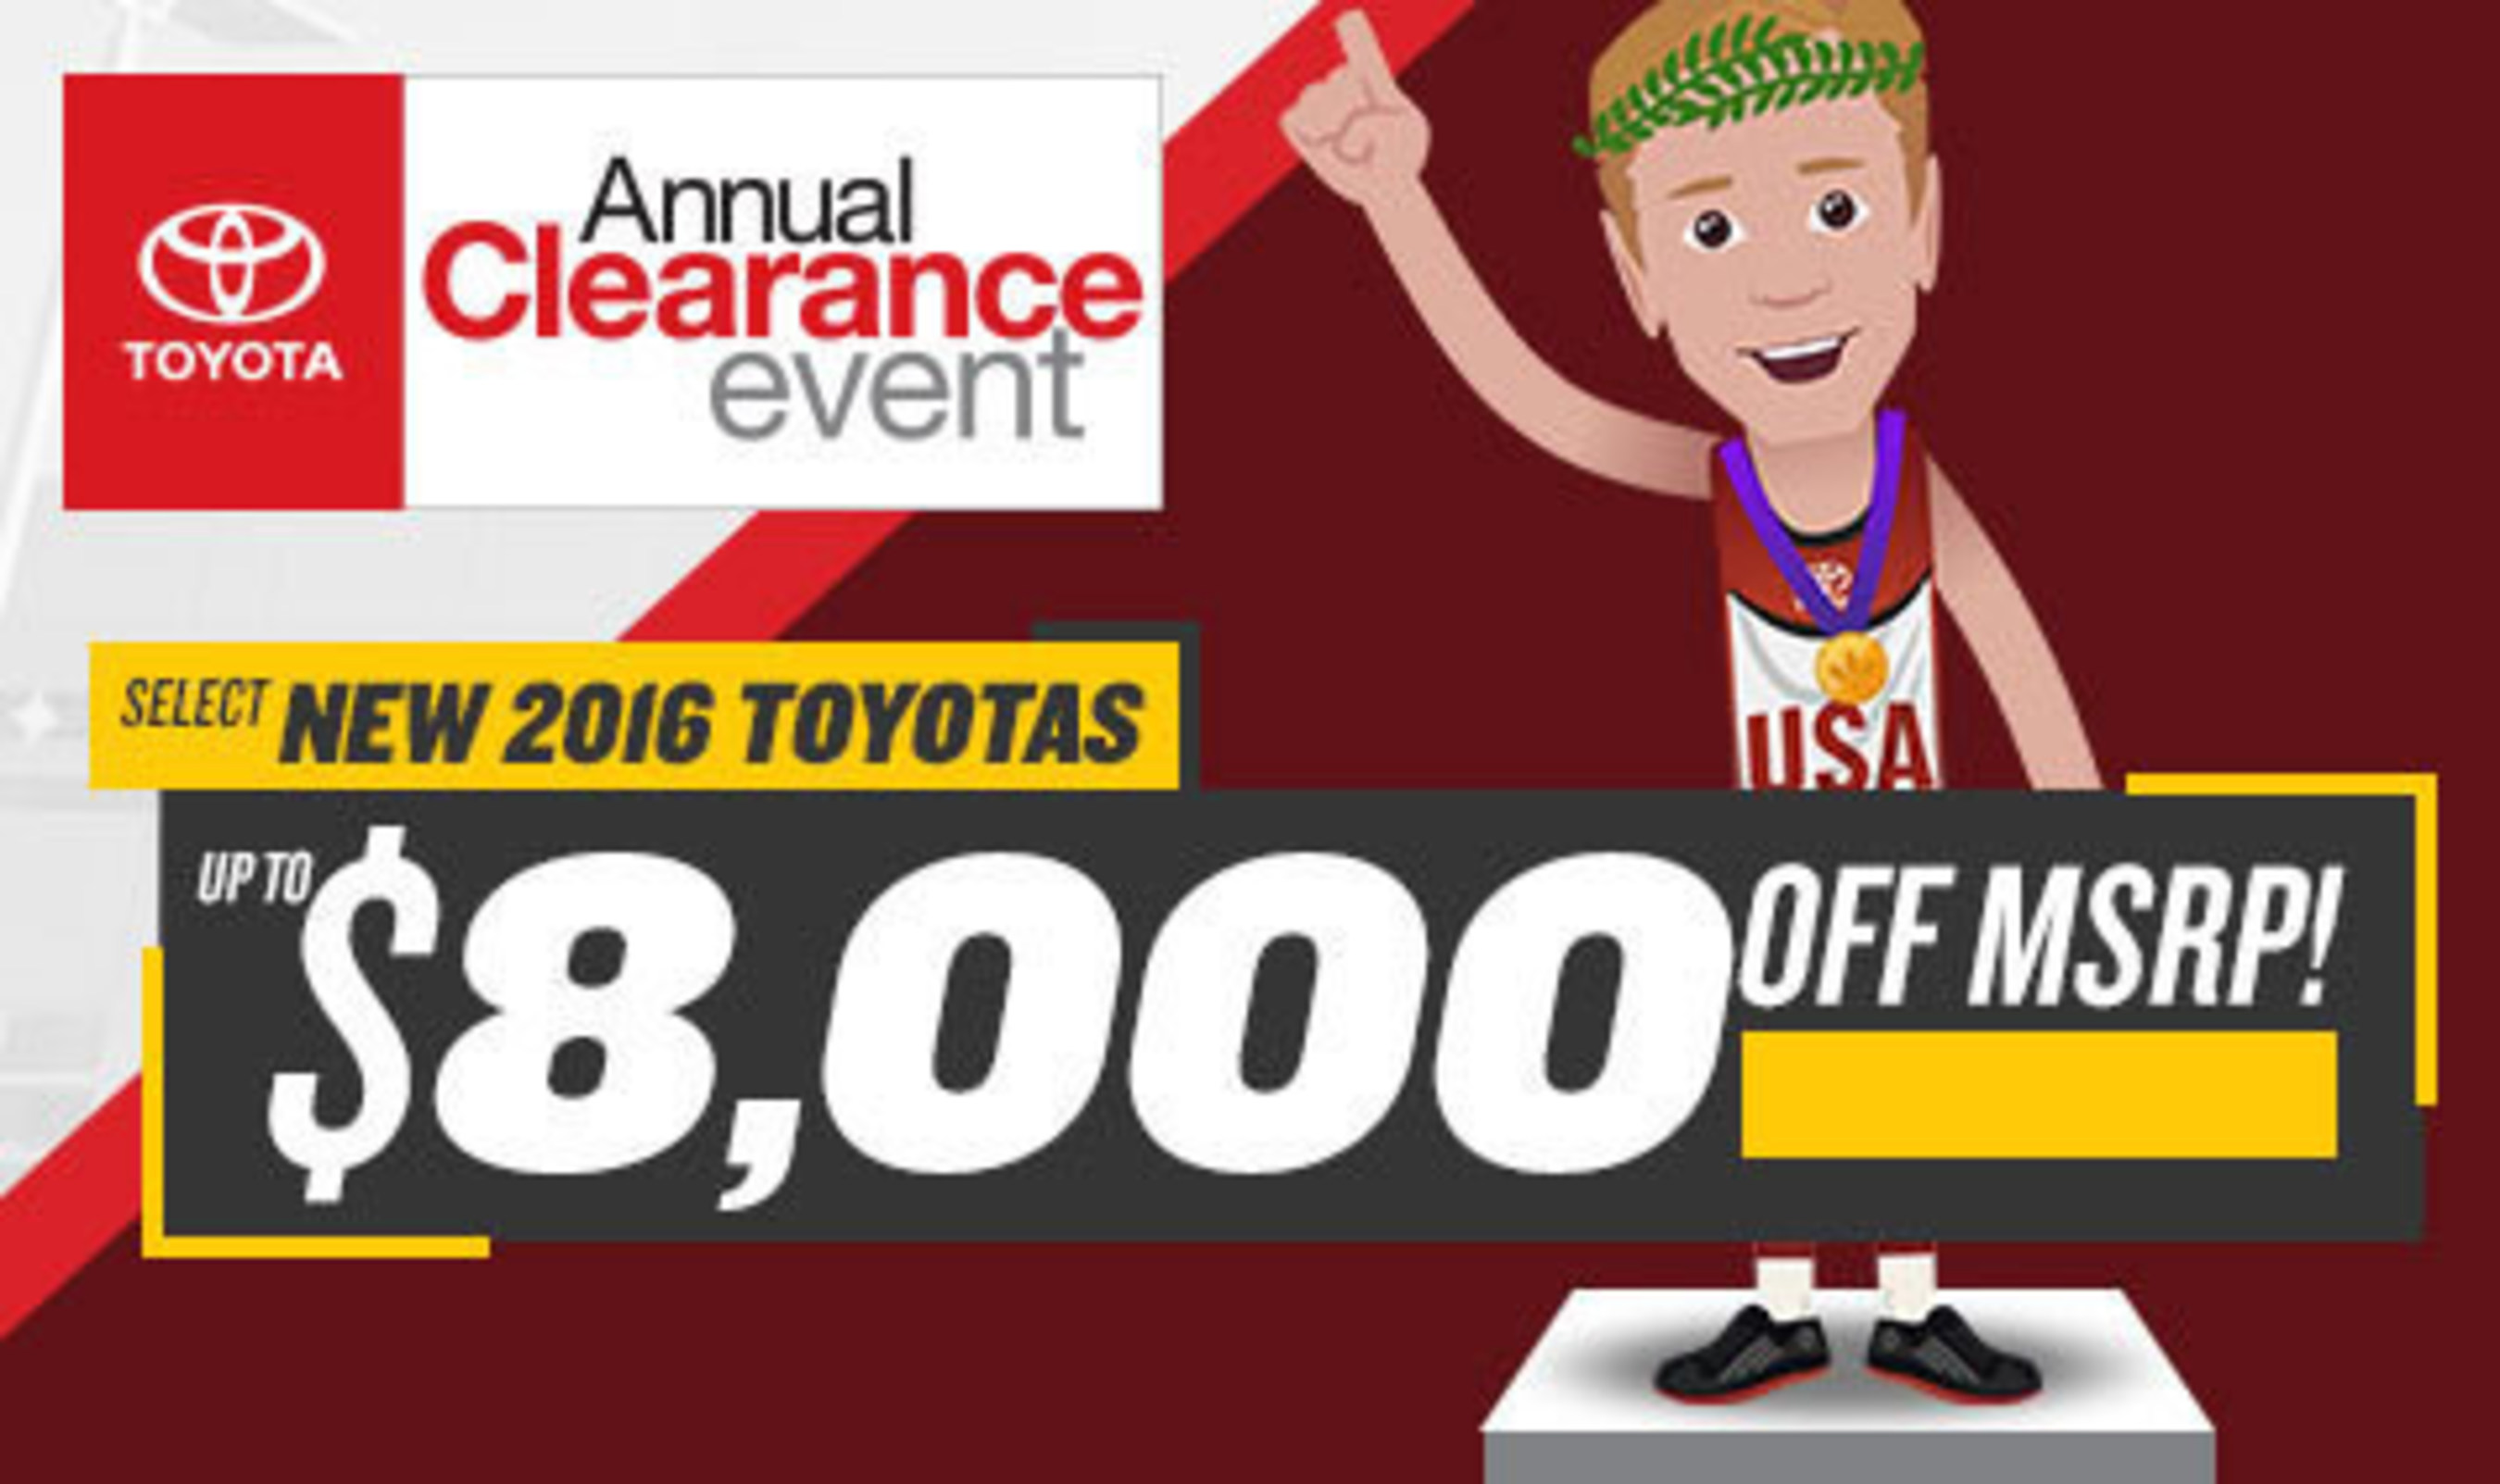 fred anderson toyota of columbia hosts the annual clearance event page 2. Black Bedroom Furniture Sets. Home Design Ideas